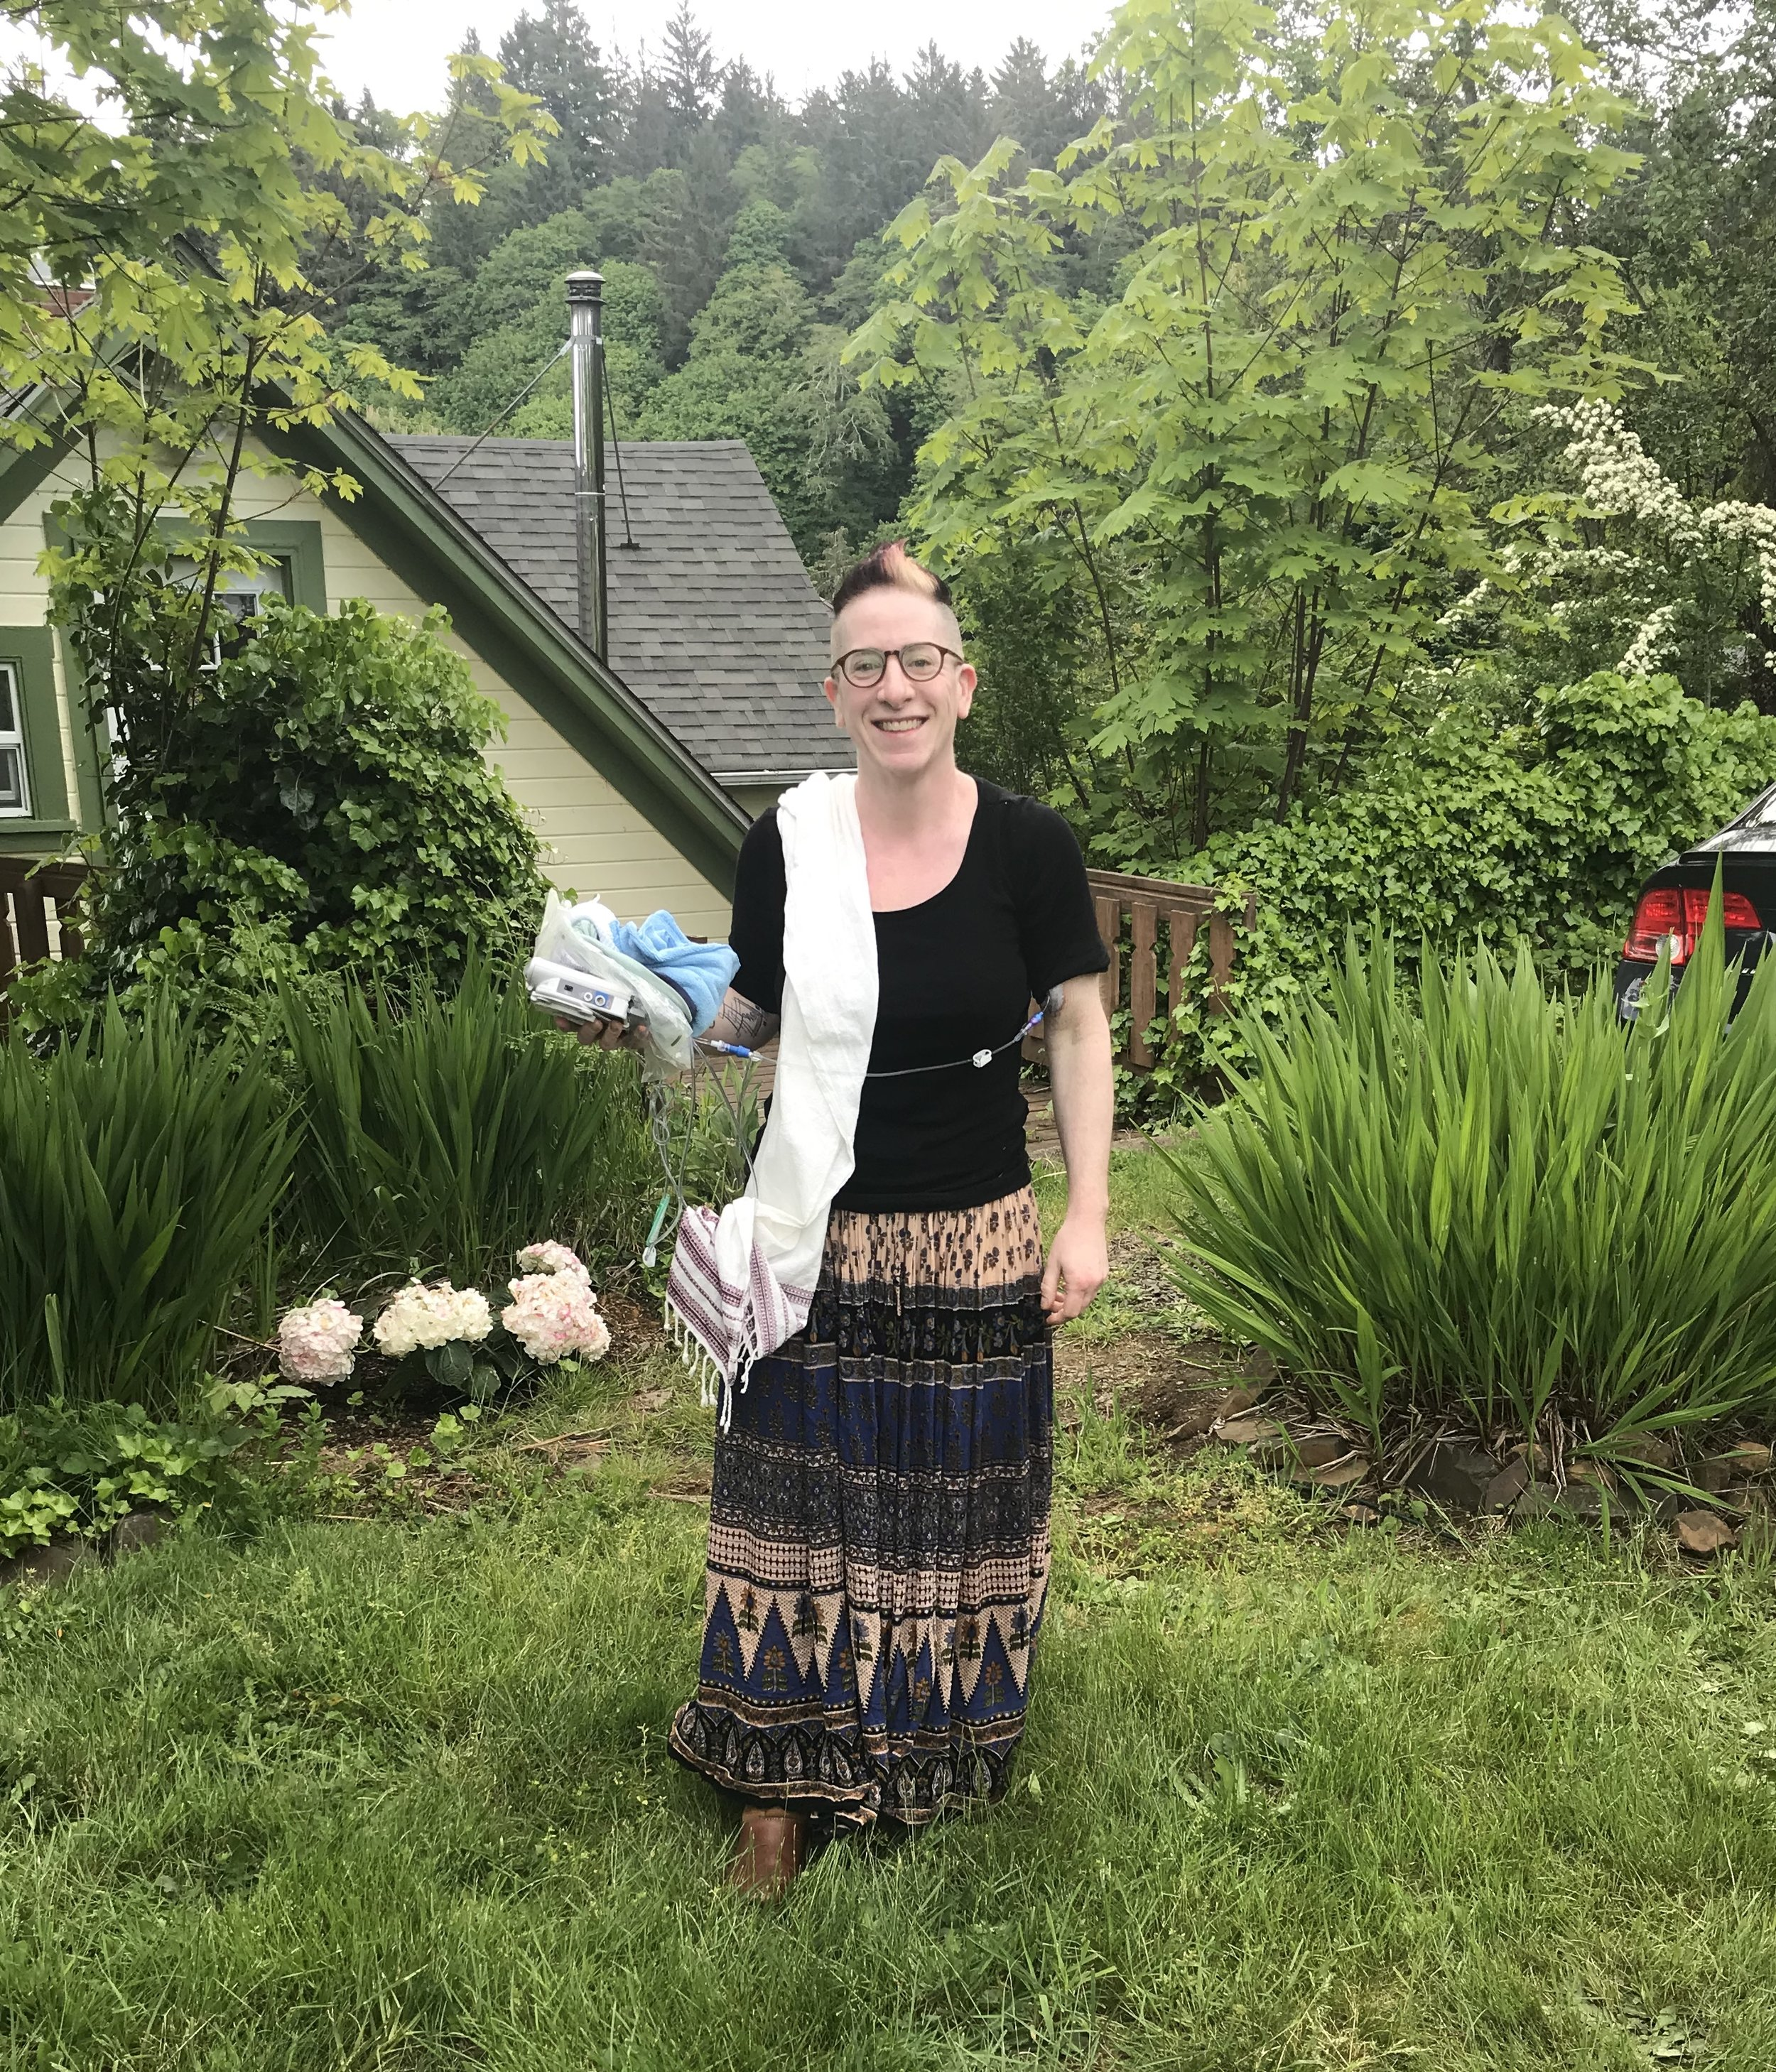 Not the most flattering photo but i'm feeling ok mentally and physically here, which is a good thing for me to have a photographic record of! Also I love the juxtaposition between the mohawk and the hippie skirt. My two extreme sides meeting in the middle! :)